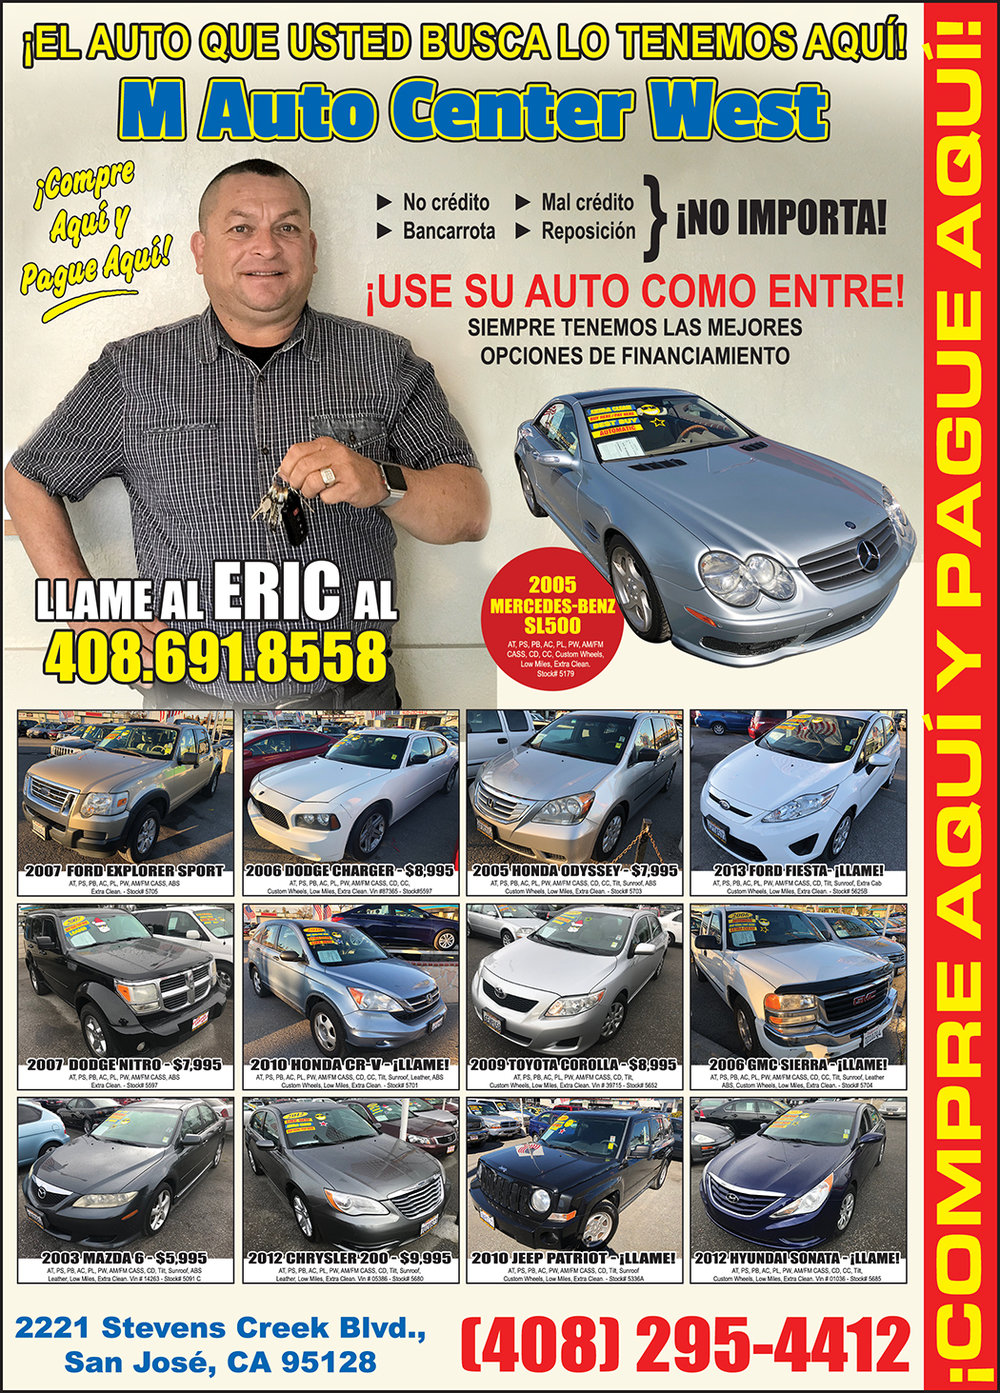 M Auto Center West 1 Pag Marzo 2018.jpg